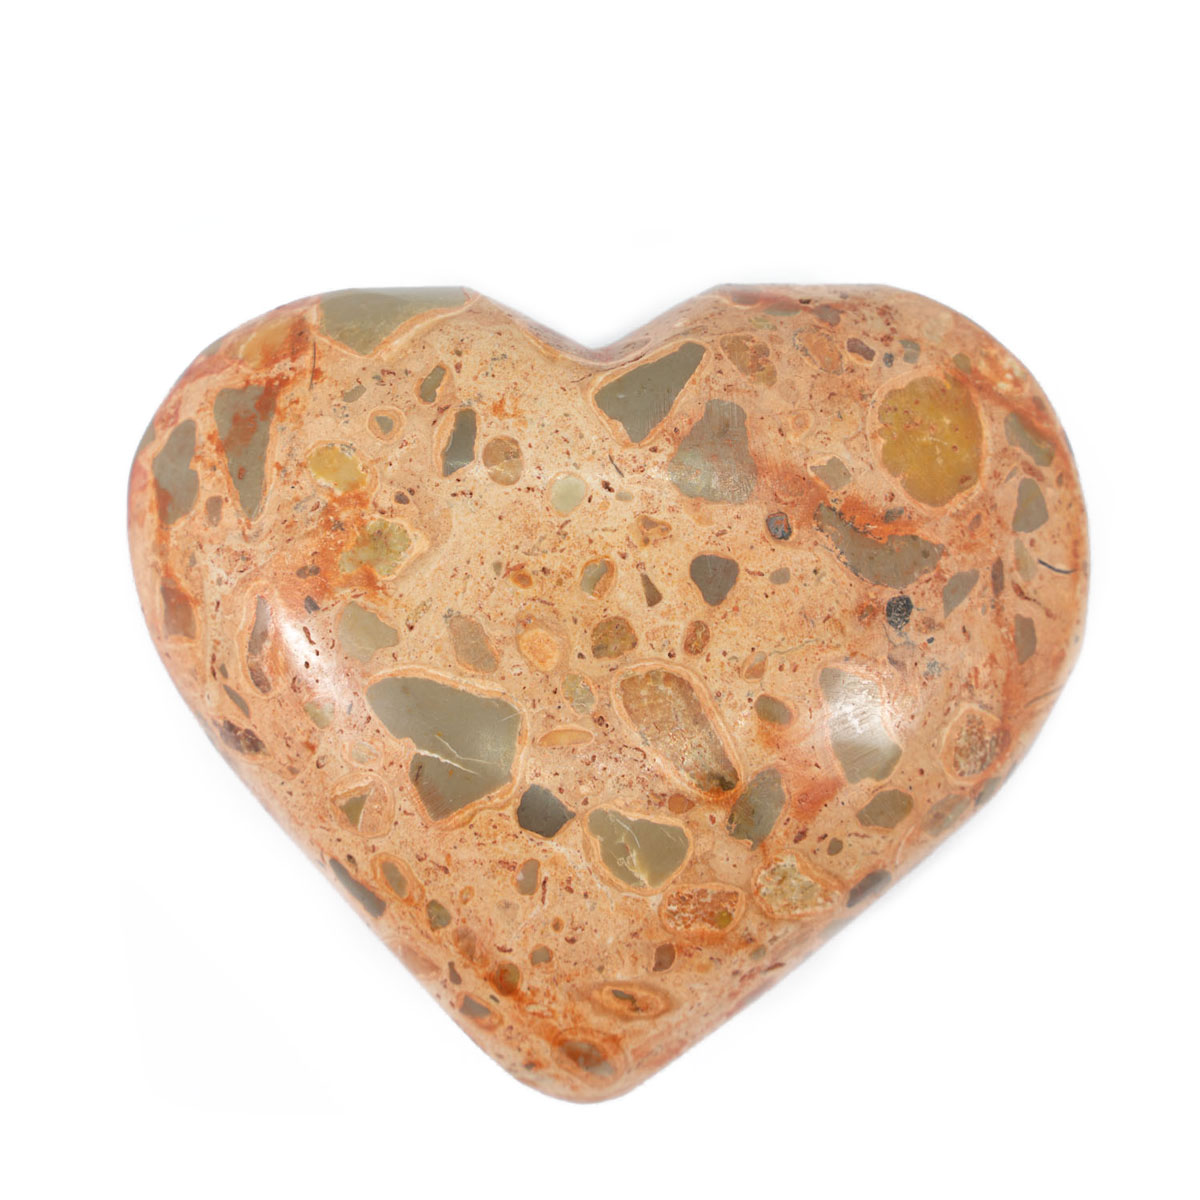 Sri Avinash Infused™ Leopardite Jasper Crystal Heart - Perfect Health Infusion